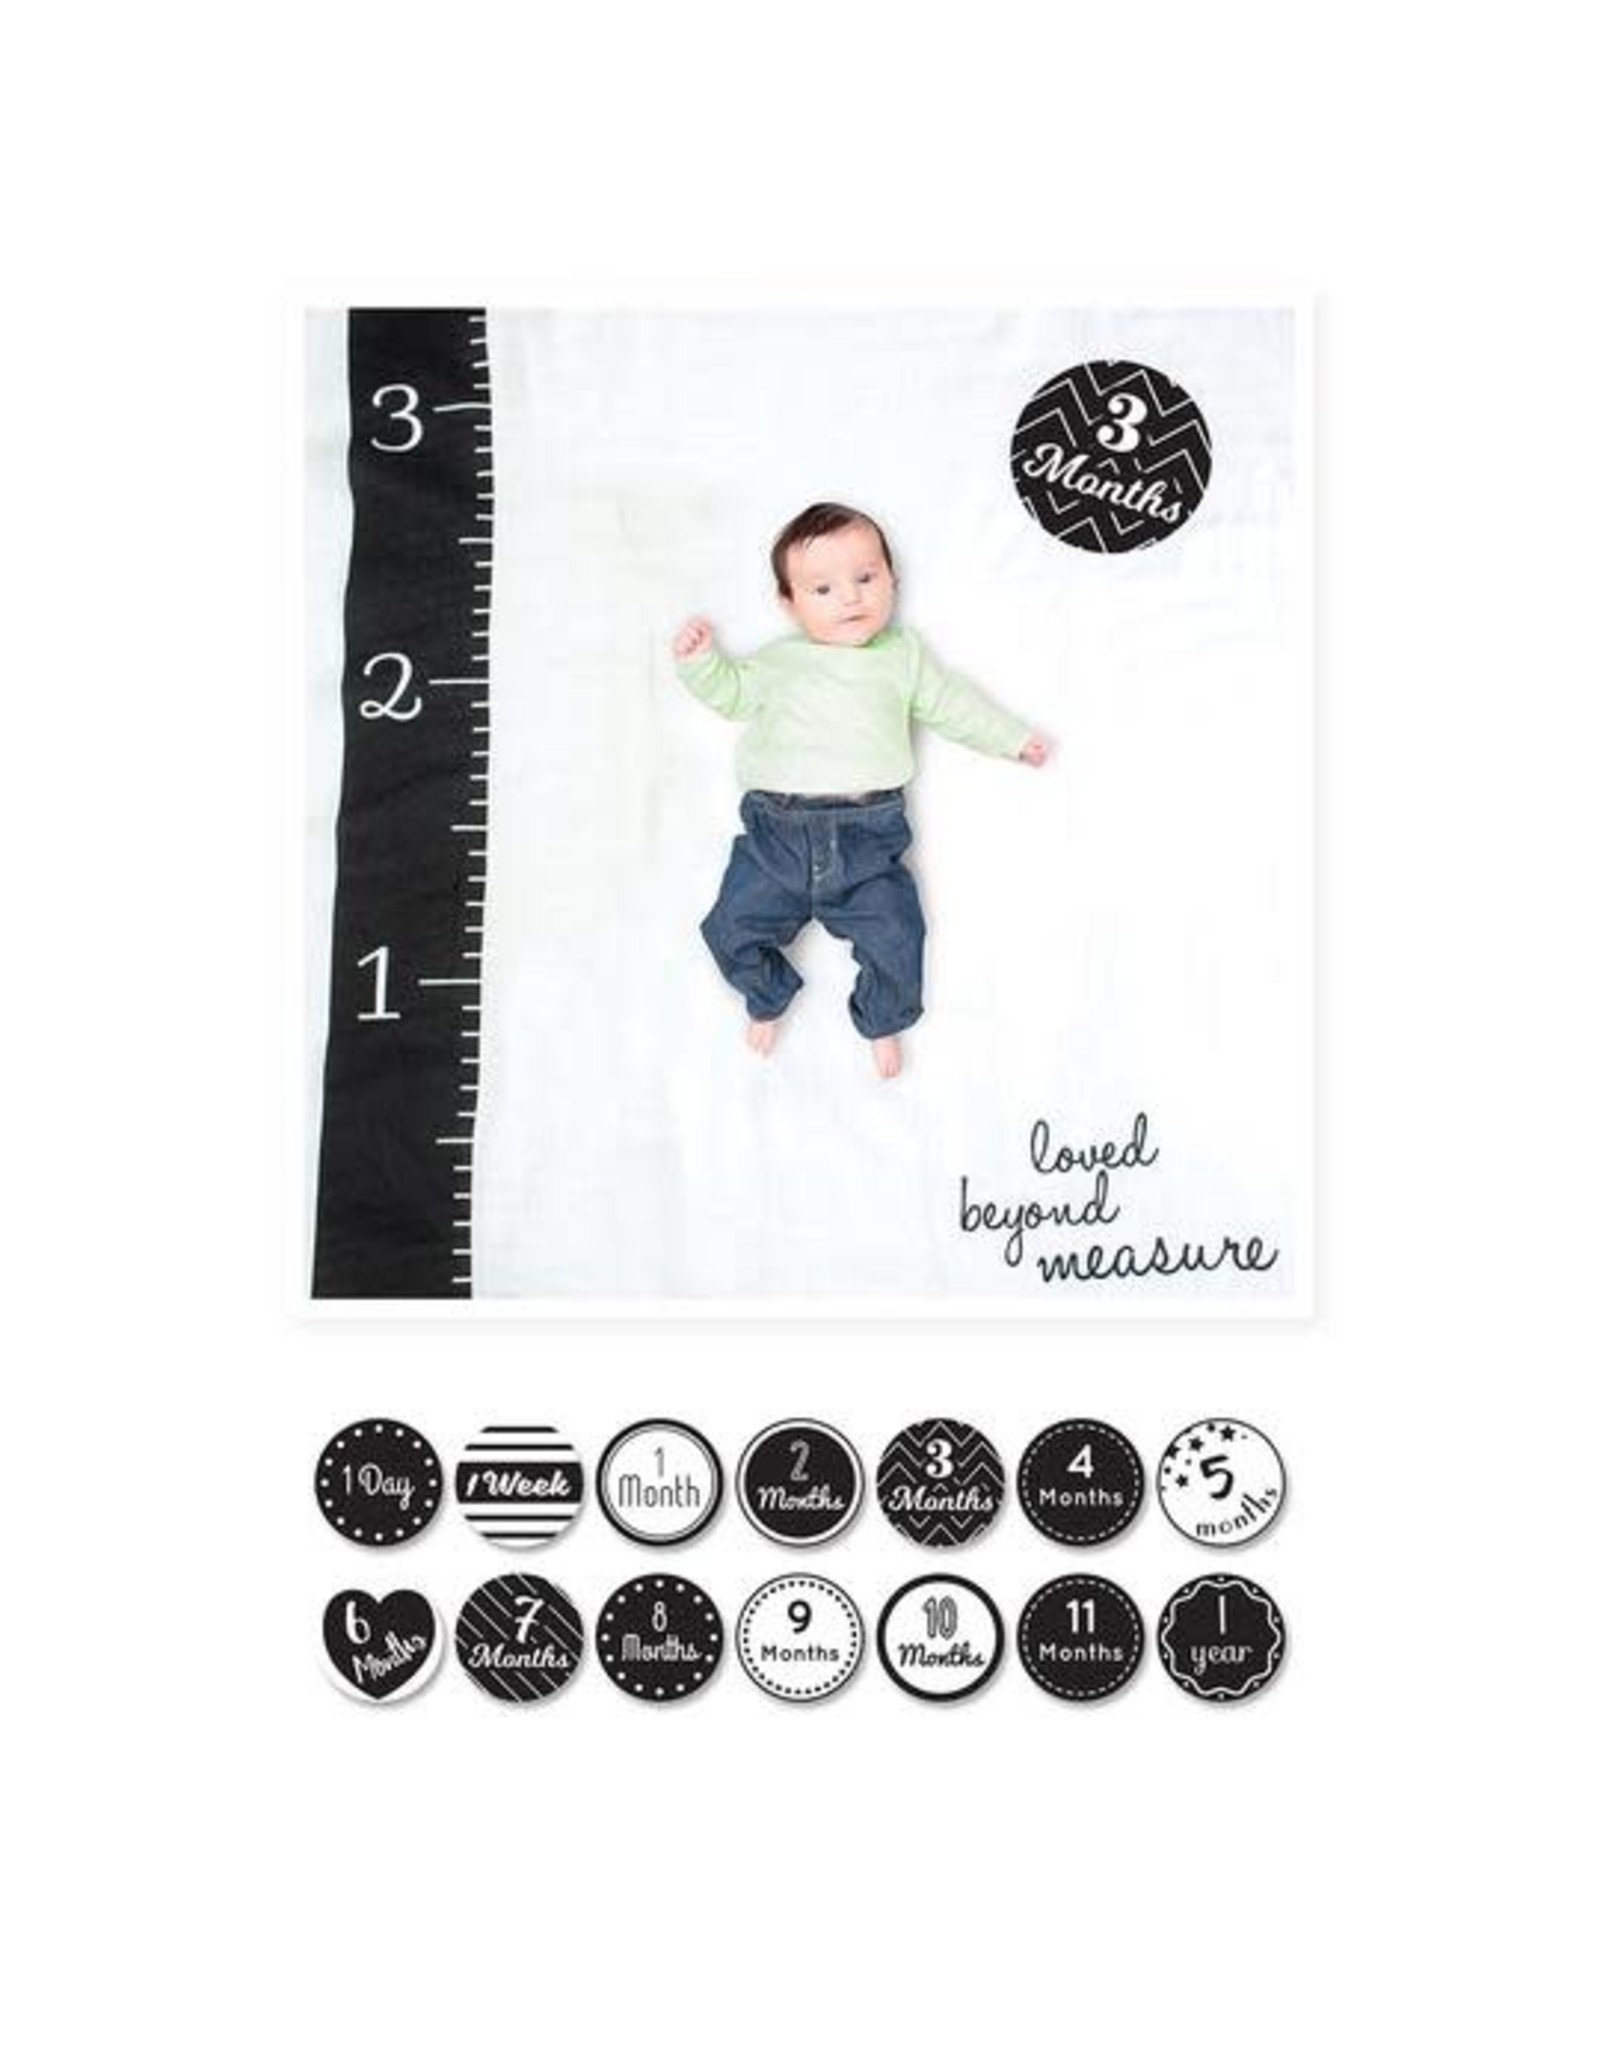 Lulujo Baby Baby's First Year Set, Loved Beyond Measure